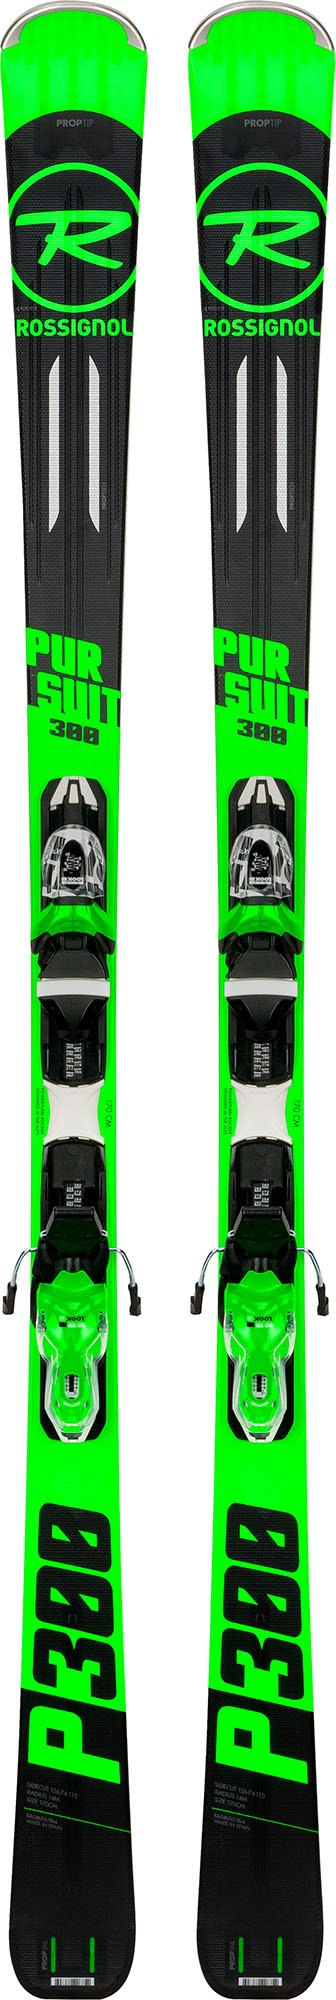 RRG05BL_RAGBL02_PURSUIT-300-Xpress2_FCGD012_XPRESS-10-B83-Black-Green-rgb72dpi